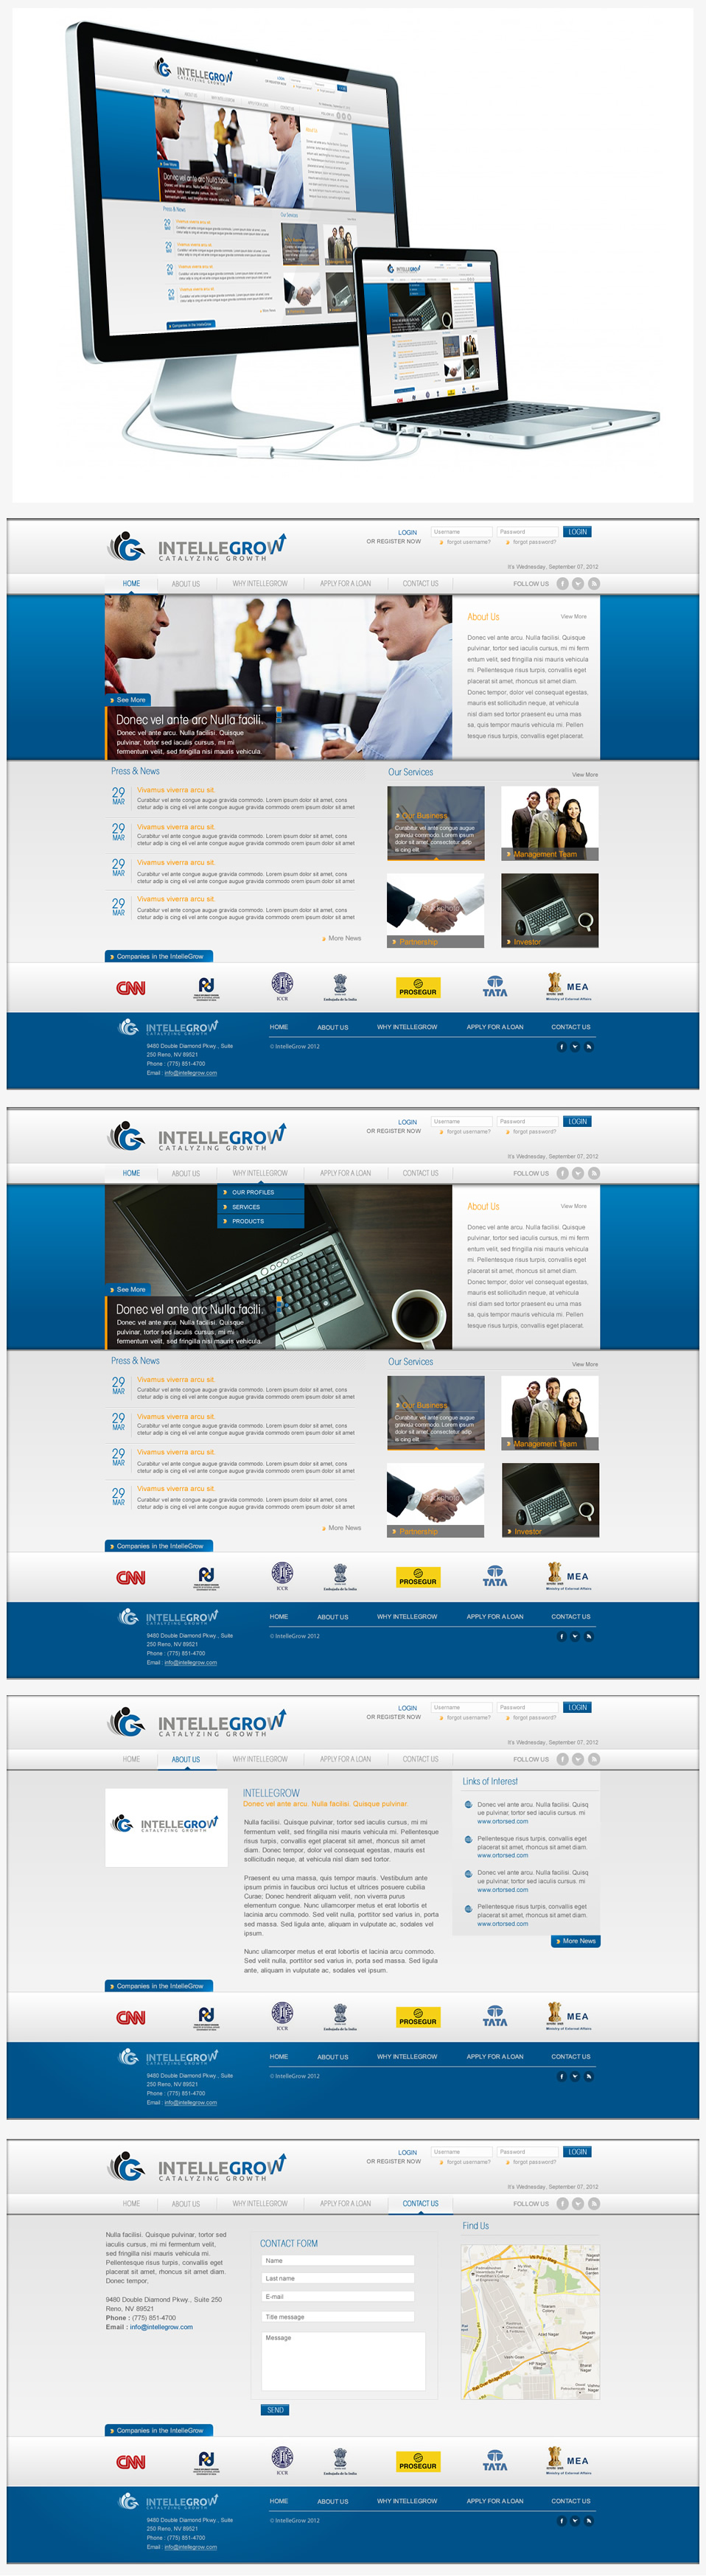 Web Page Design by Juma Studio - Entry No. 24 in the Web Page Design Contest IntelleGrow Finance Web Page Design.